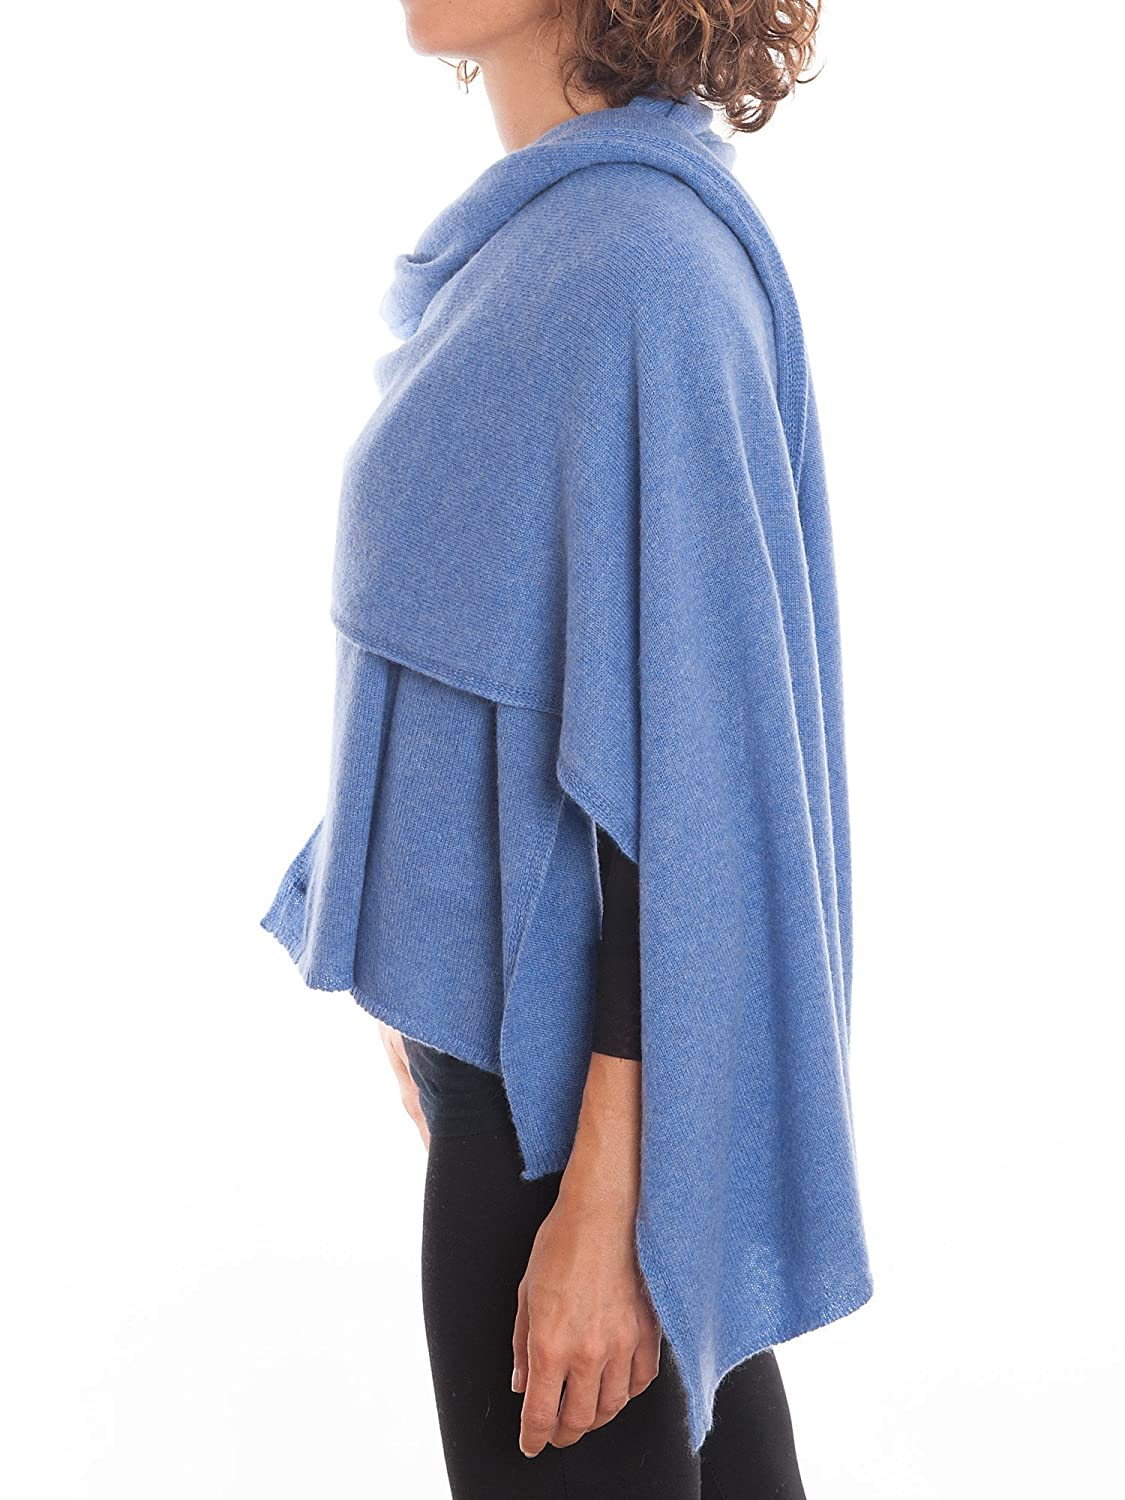 One size Dalle Piane Cashmere Woman Made in Italy Color: Beige Stole 100/% cashmere